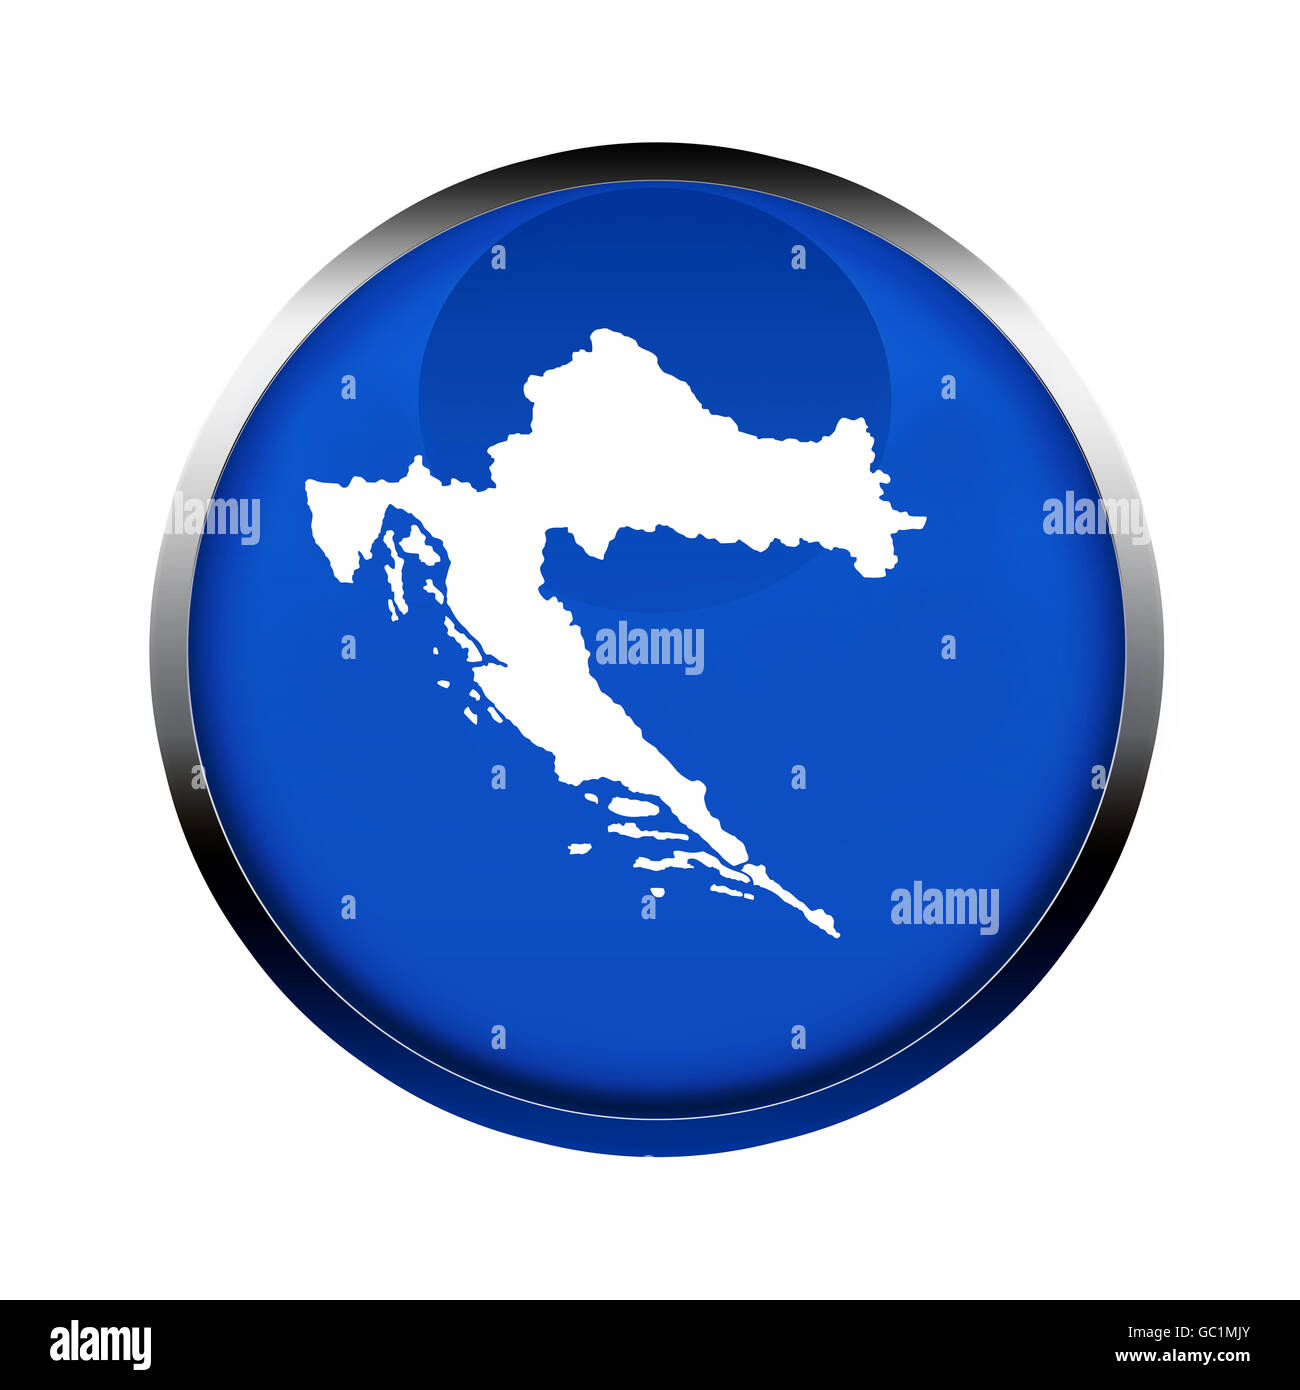 Croatia map button in the colors of the European Union. - Stock Image